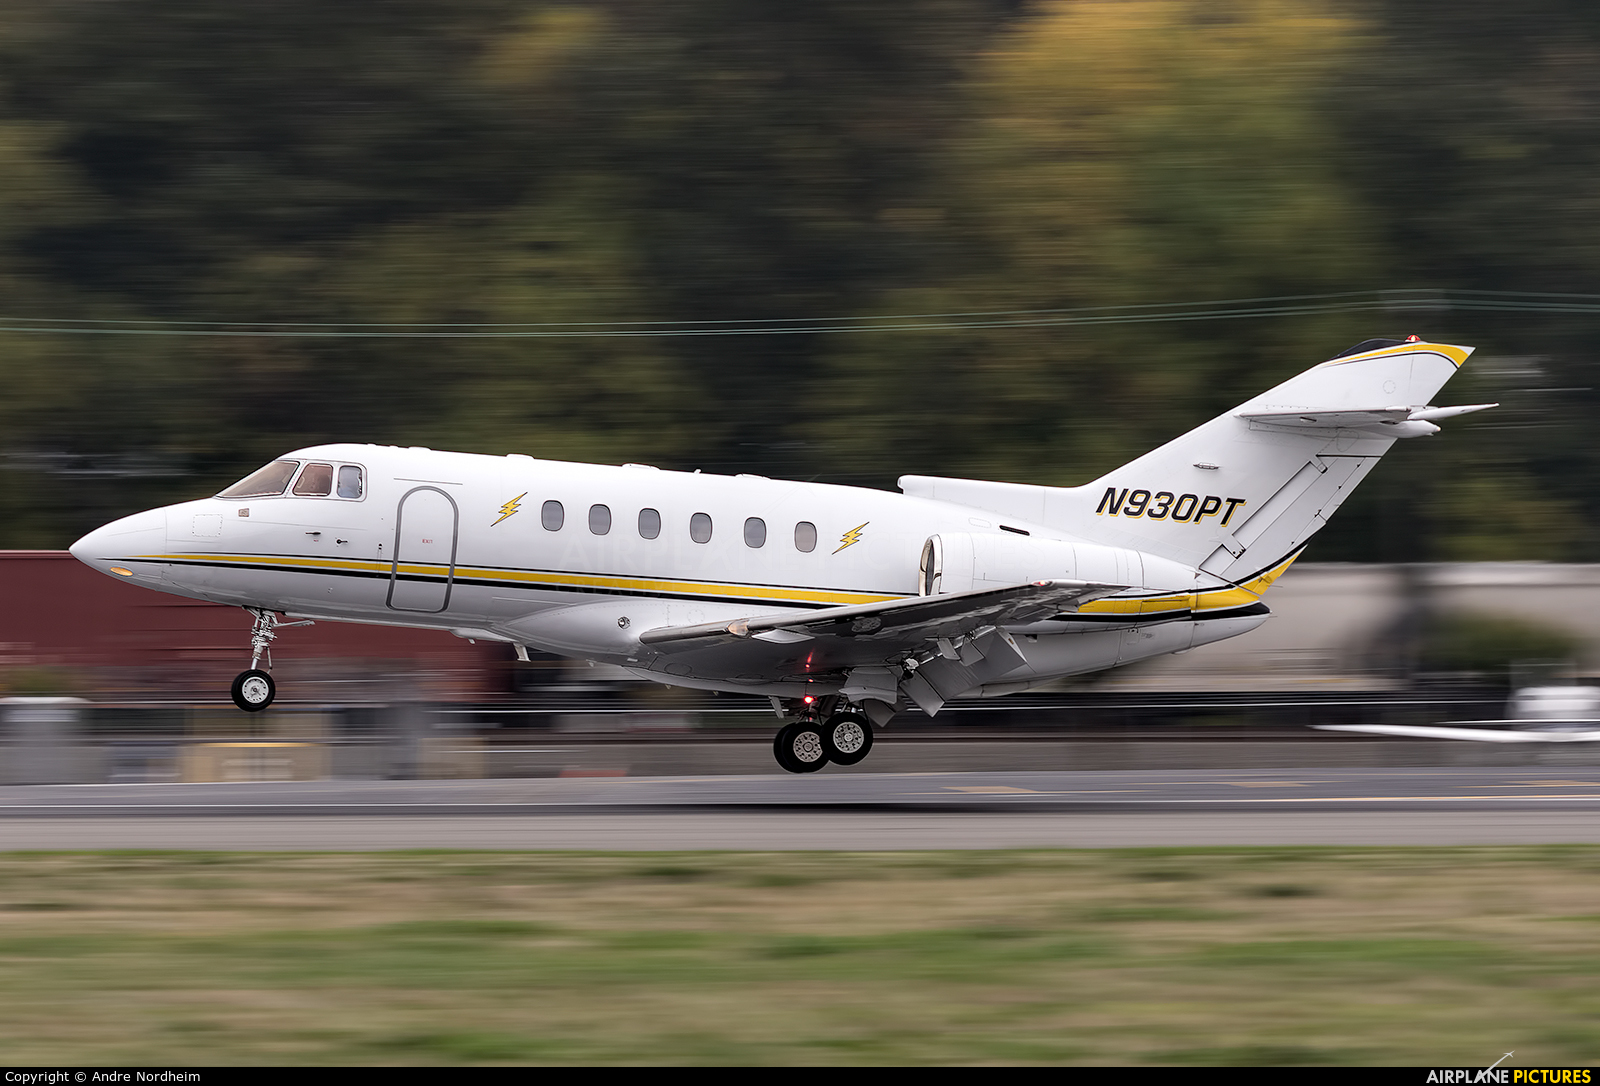 Clay Lacy Aviation N930PT aircraft at Seattle - Boeing Field / King County Intl